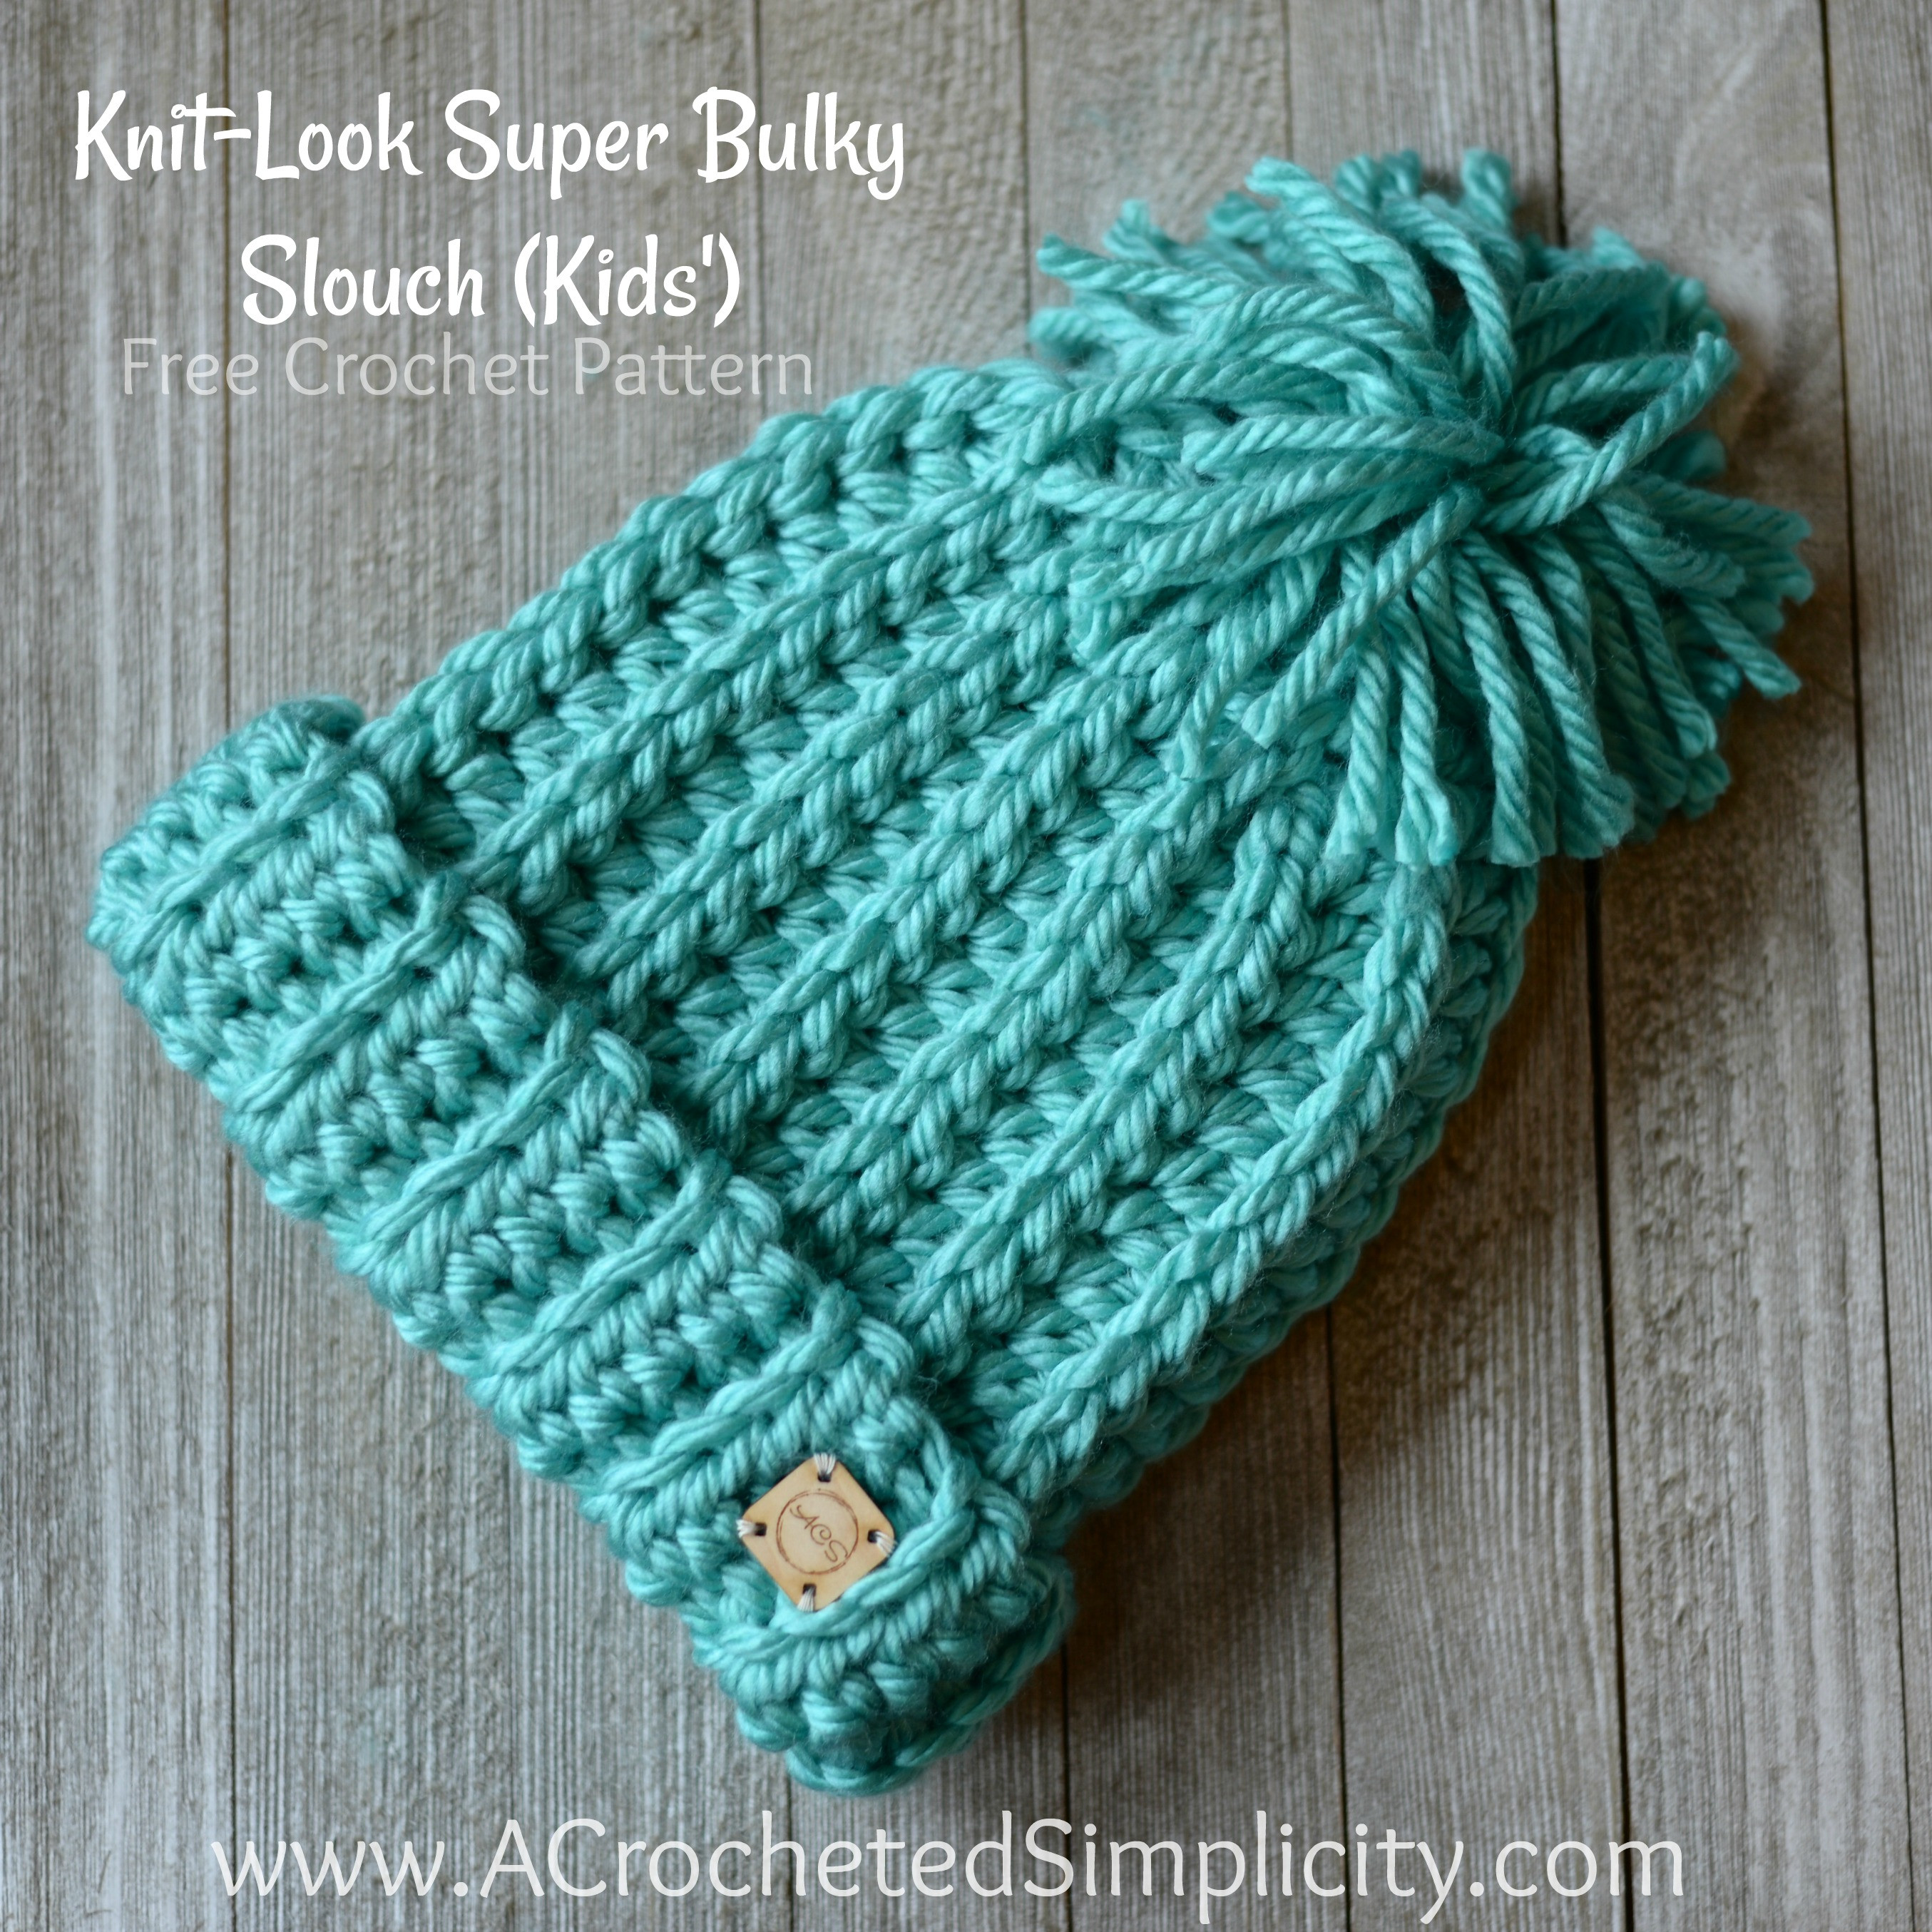 Bulky Yarn Crochet Patterns New Free Crochet Pattern Knit Look Super Bulky Slouch Kids Of Charming 49 Images Bulky Yarn Crochet Patterns